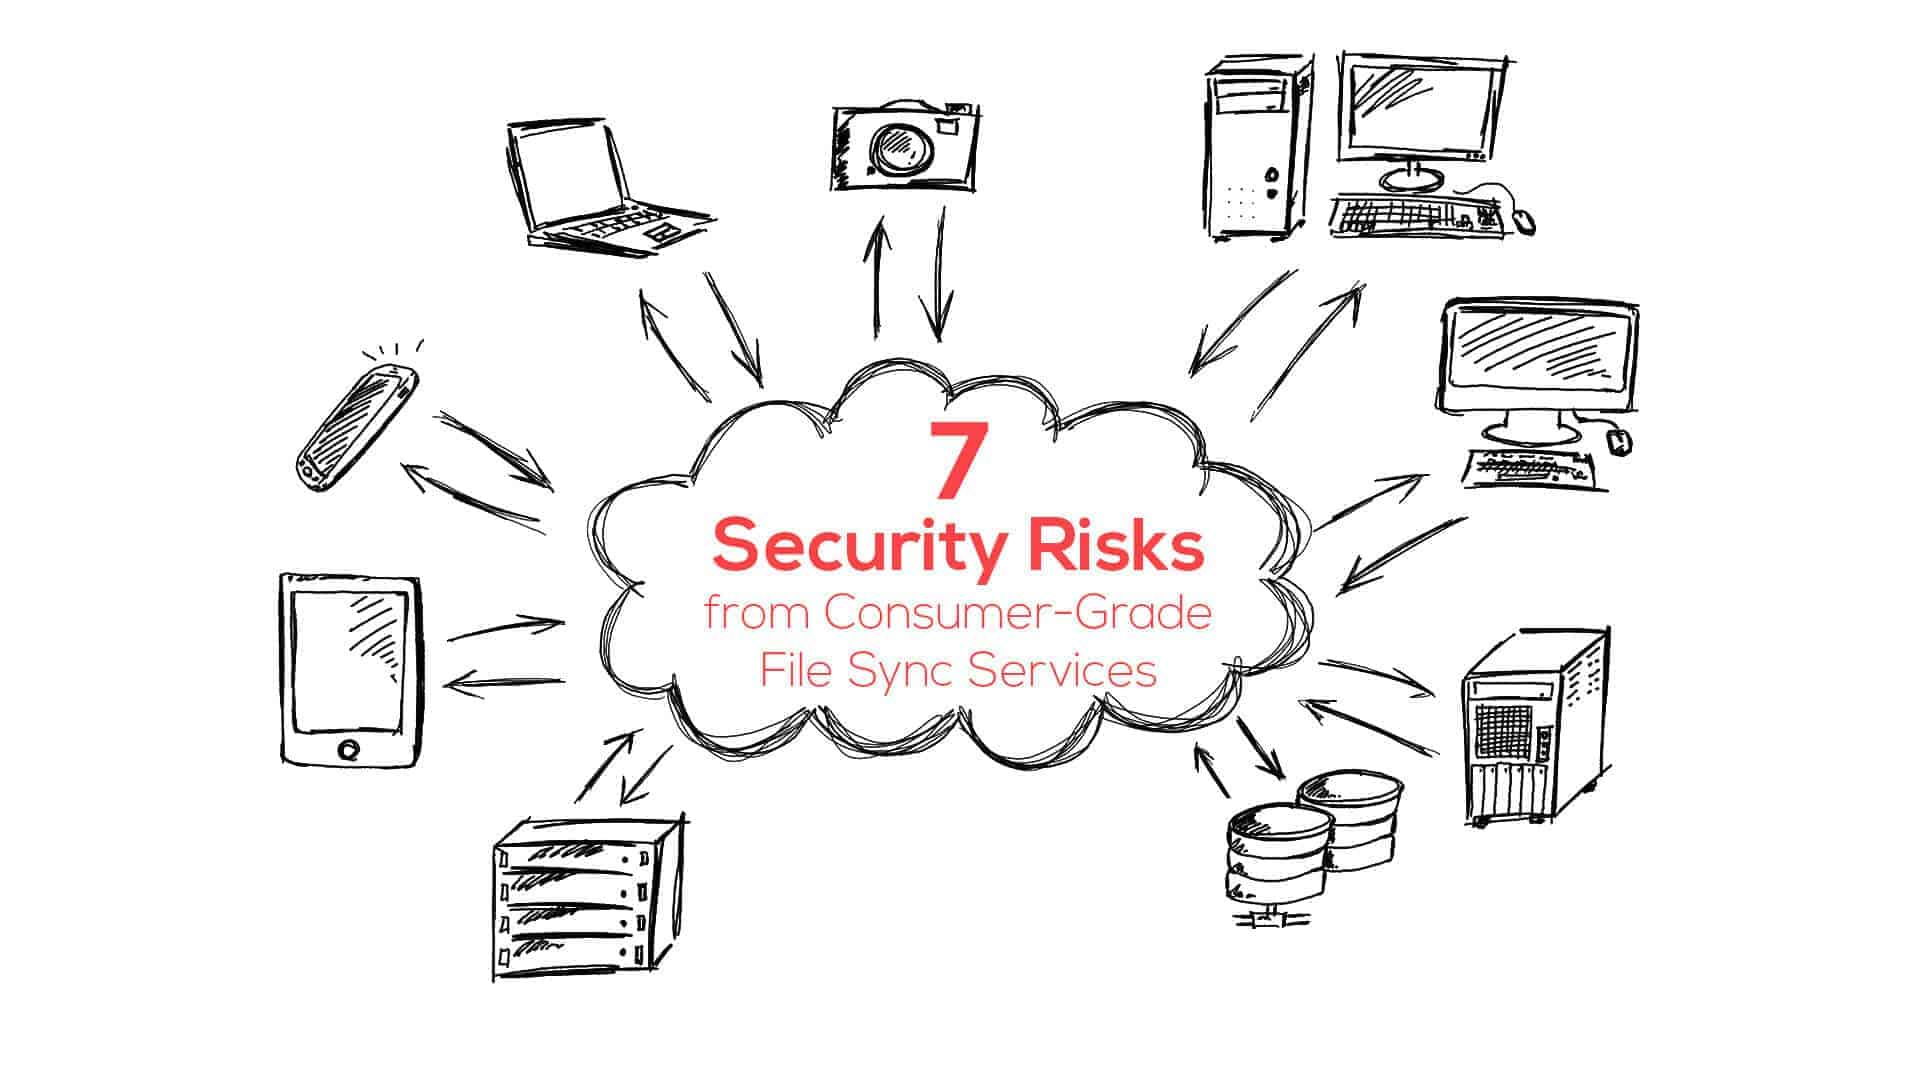 7 Security Risks from Consumer-Grade File Sync Services